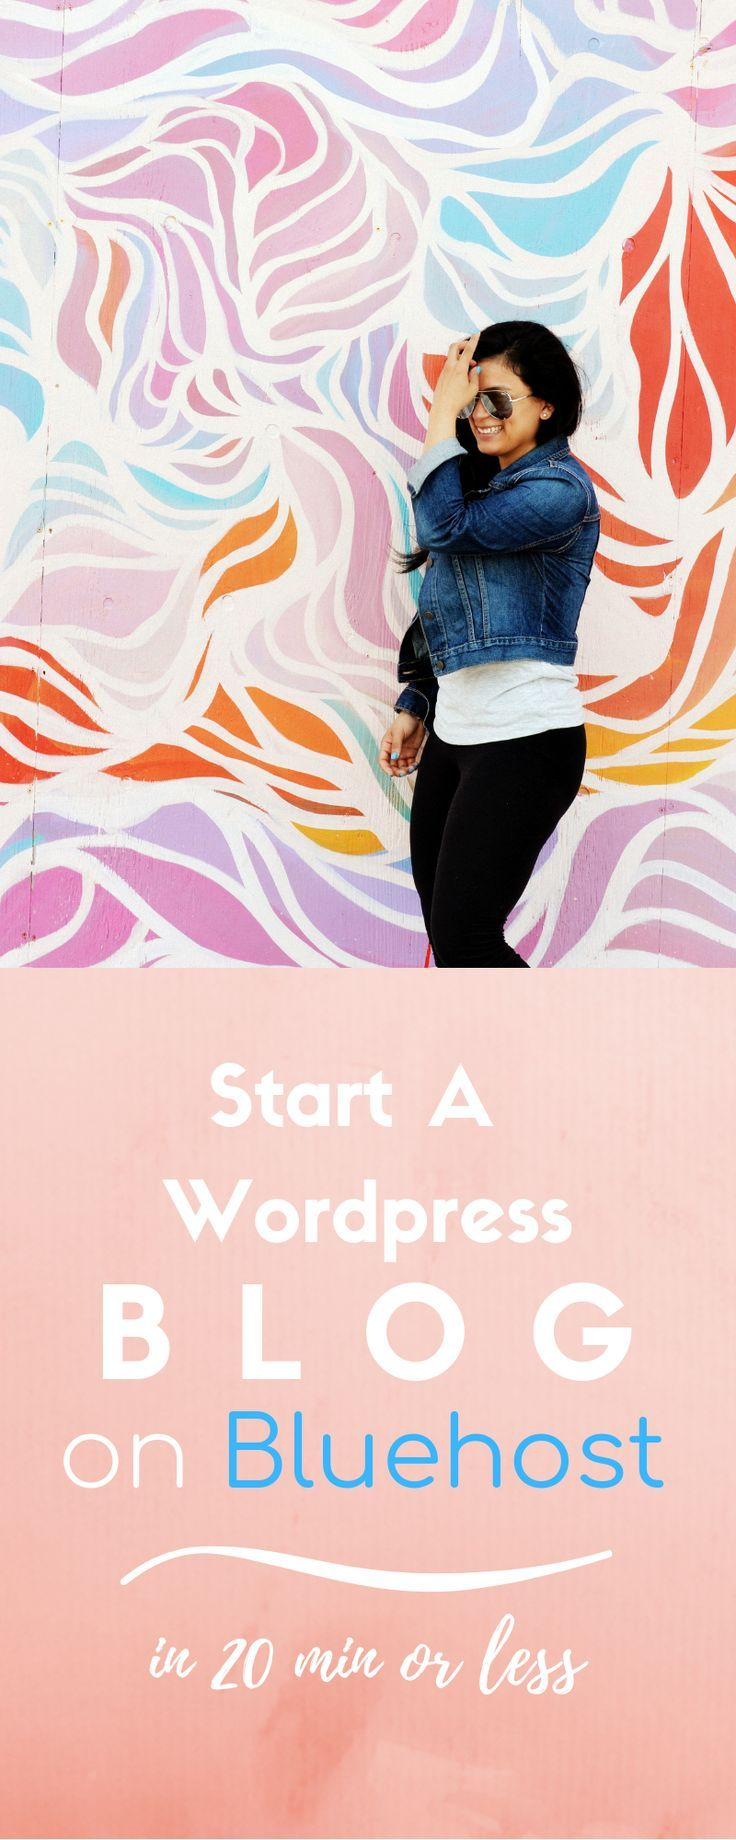 How to start a WordPress blog on Bluehost in 20 minutes or